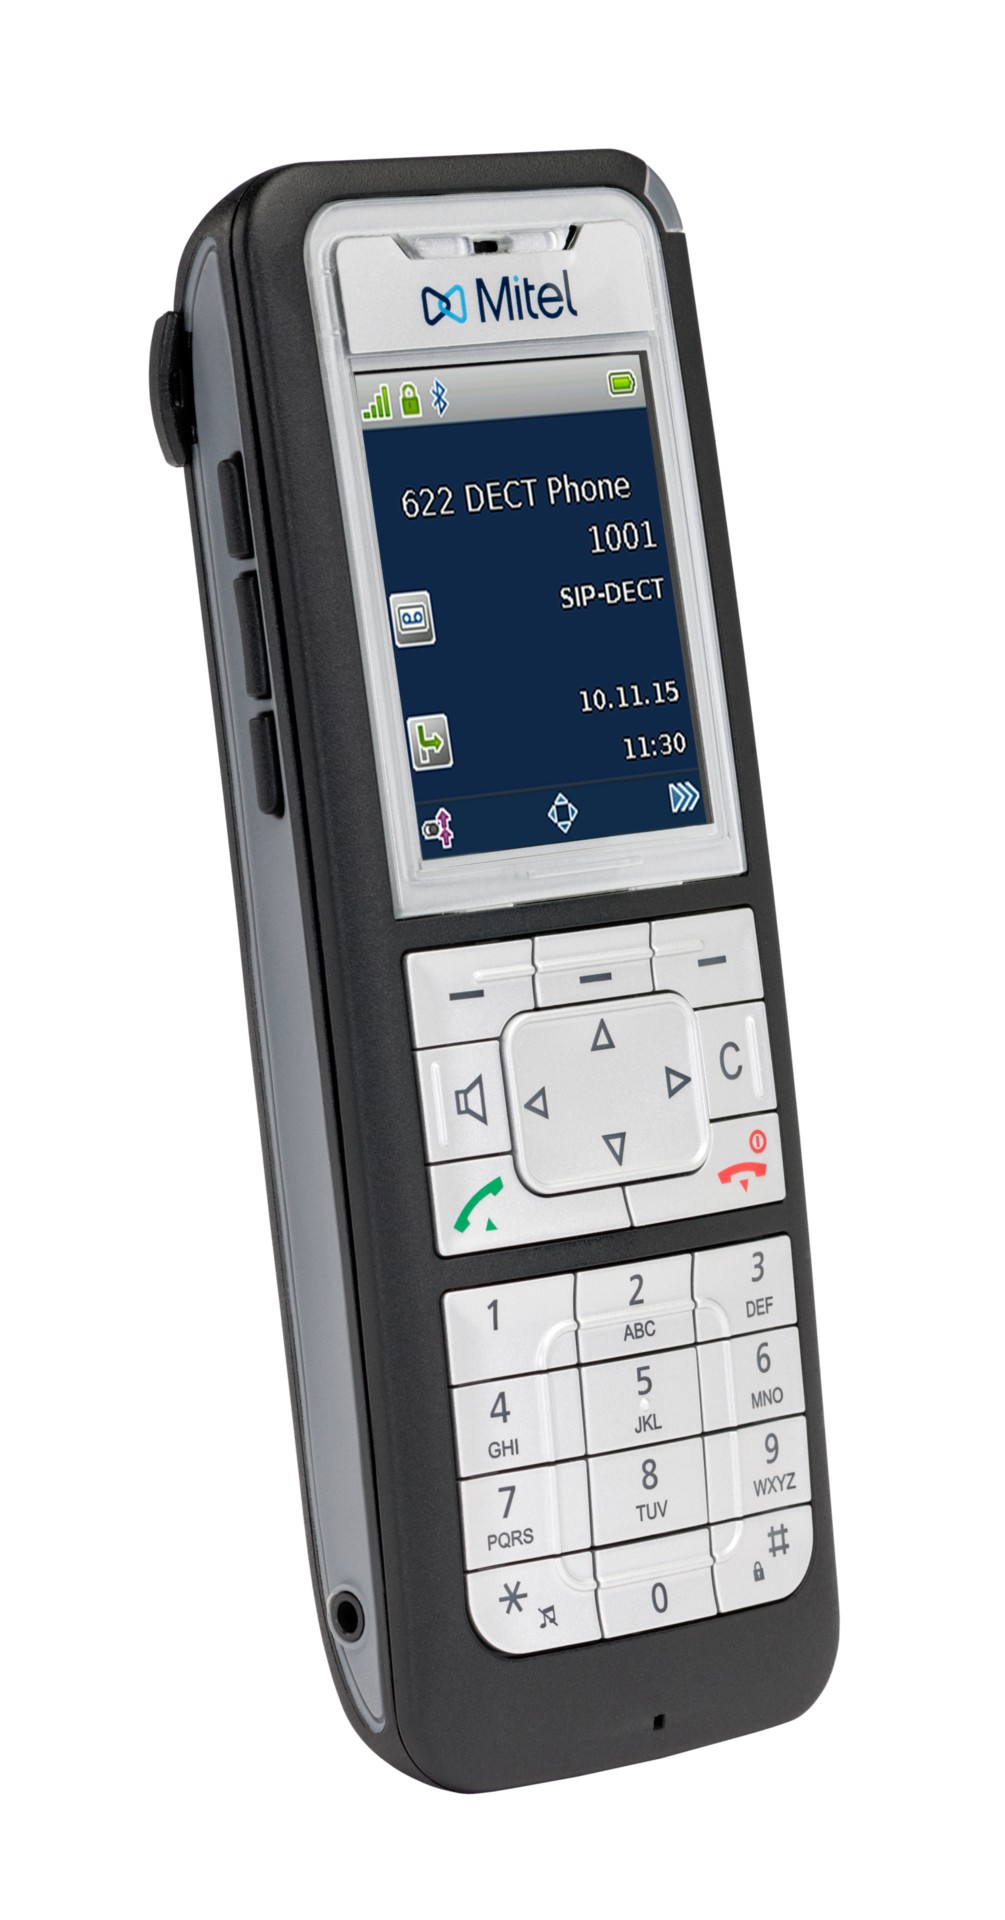 Mitel 622 DECT Phone | 4Sight Communications